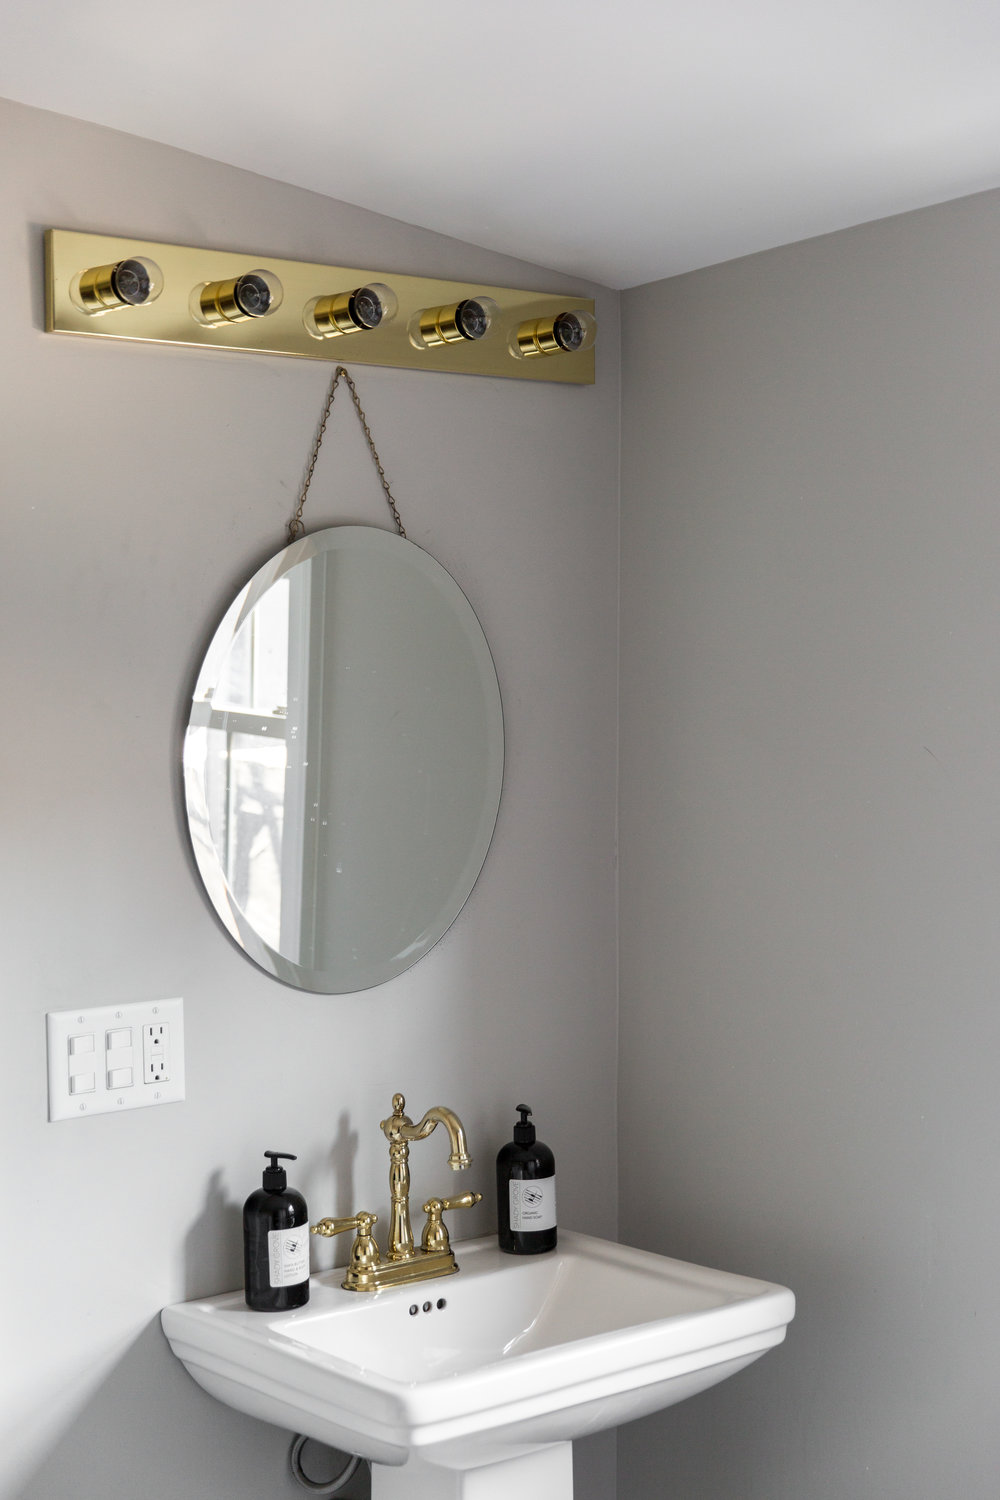 The Lee Wendell Suite - bathroom sink and mirror